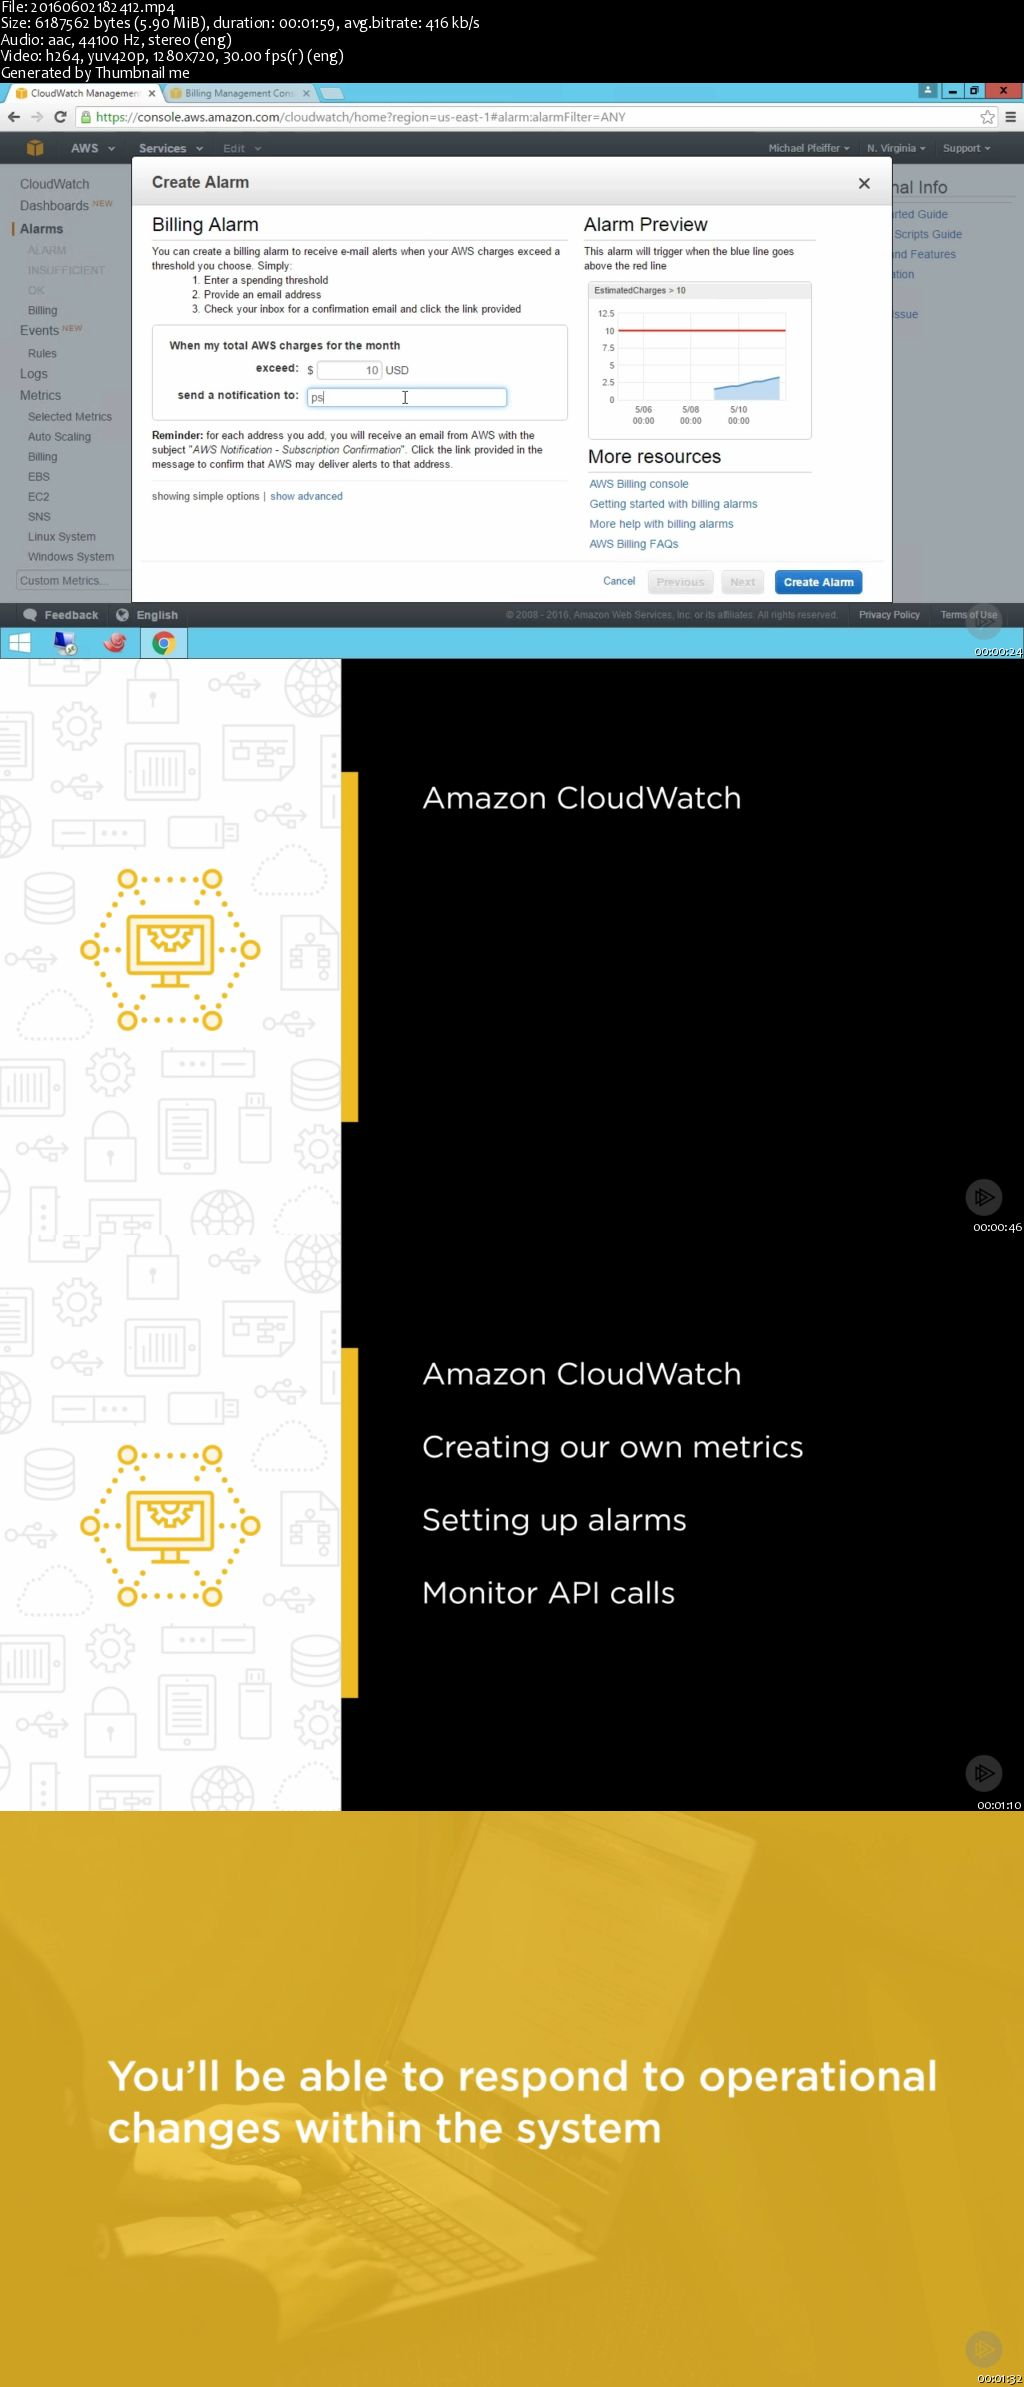 AWS Certified DevOps Engineer: Monitoring, Metrics, and Logging